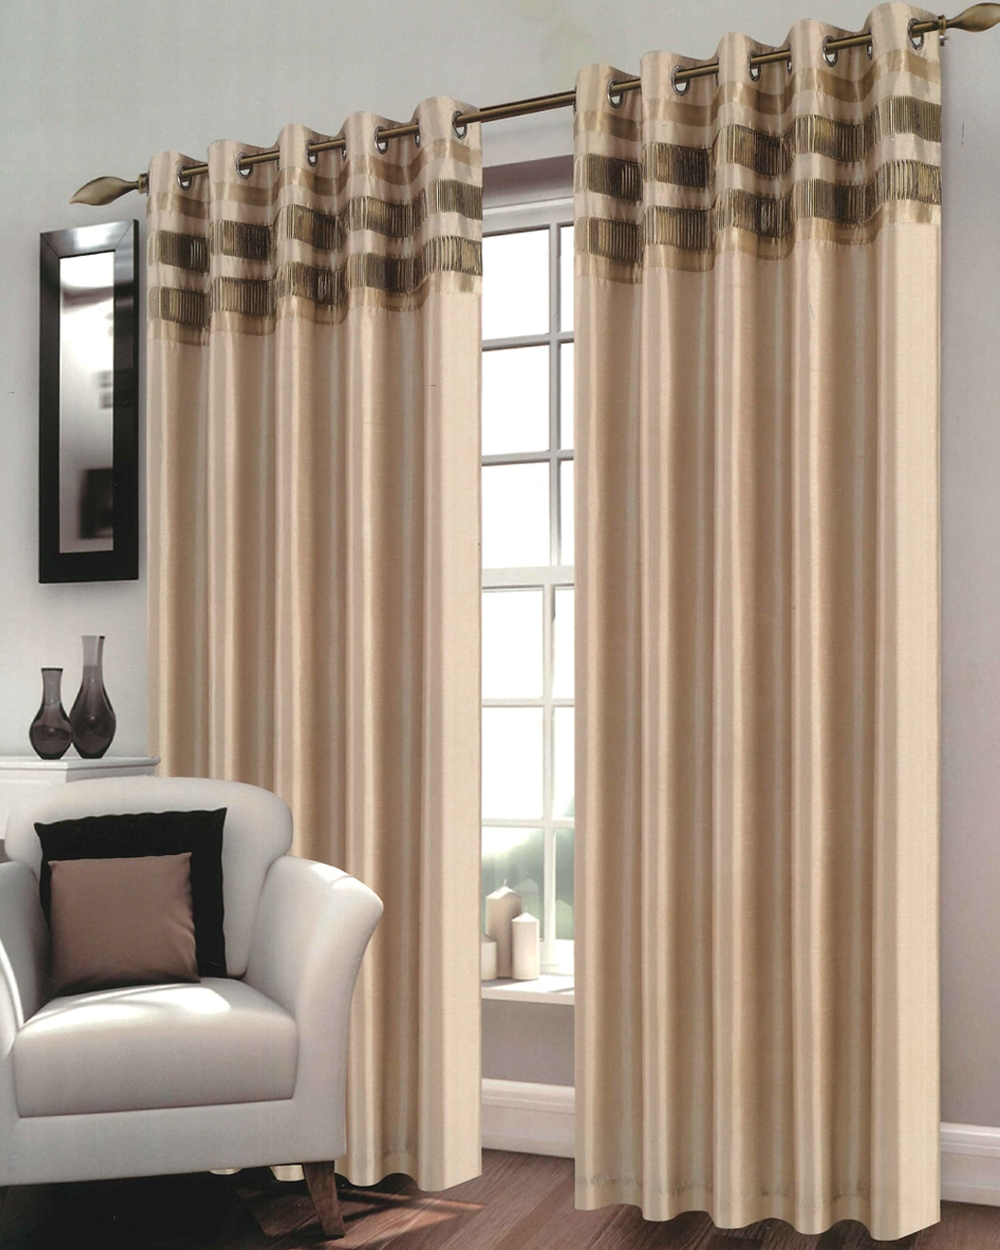 Bergen Gold Ready Made Eyelet Curtains Harry Corry Limited With Brown Eyelet Curtains (Image 3 of 25)